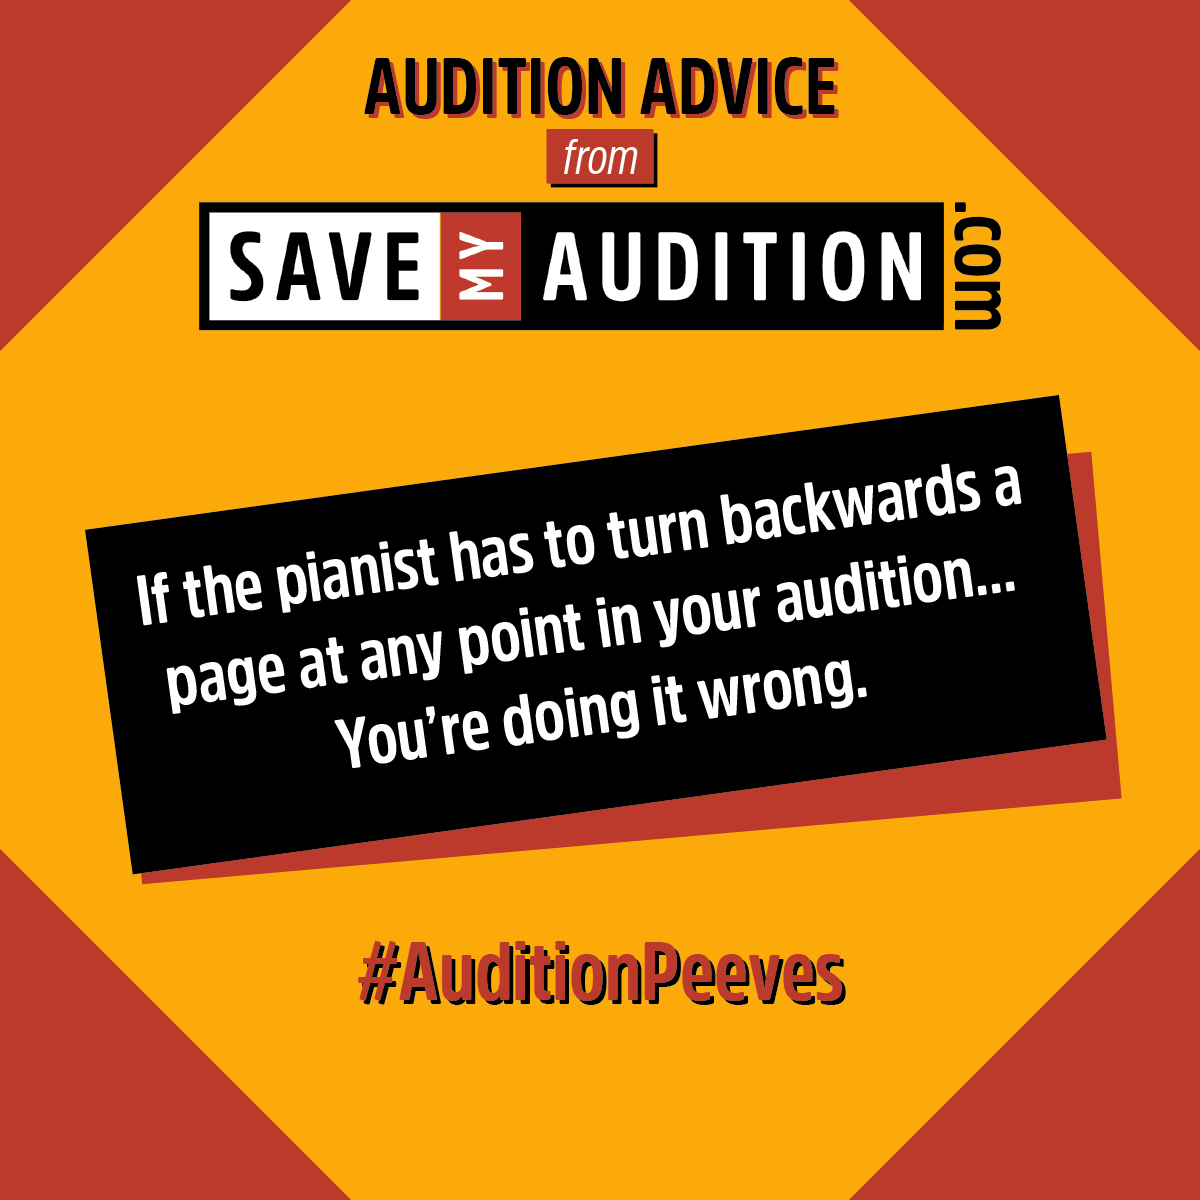 042219_AUDITION_ADVICE.png